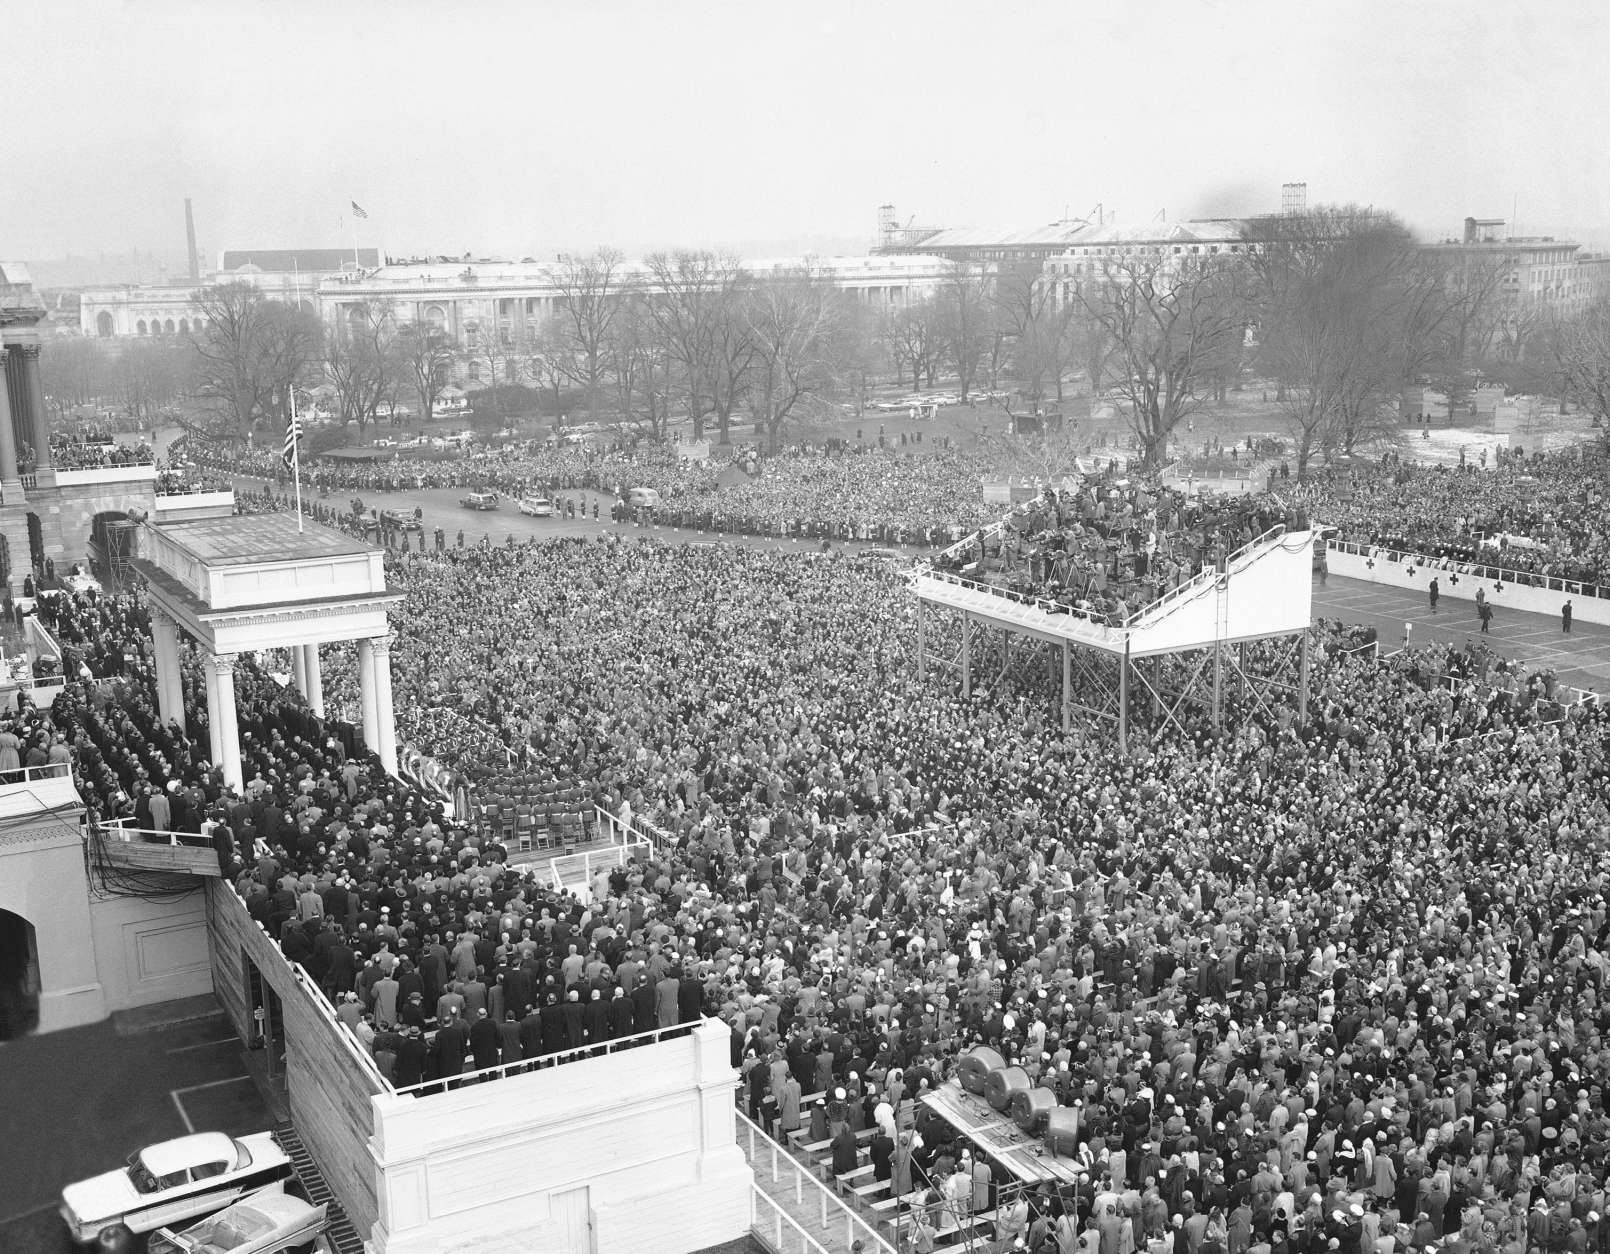 View from house roof during public ceremonies at Capitol in Washington, D.C., Jan. 21, 1957 as President Dwight Eisenhower and Vice President Richard Nixon were sworn in for second terms. Cameramen fill stand above crowd at right center. (AP Photo)